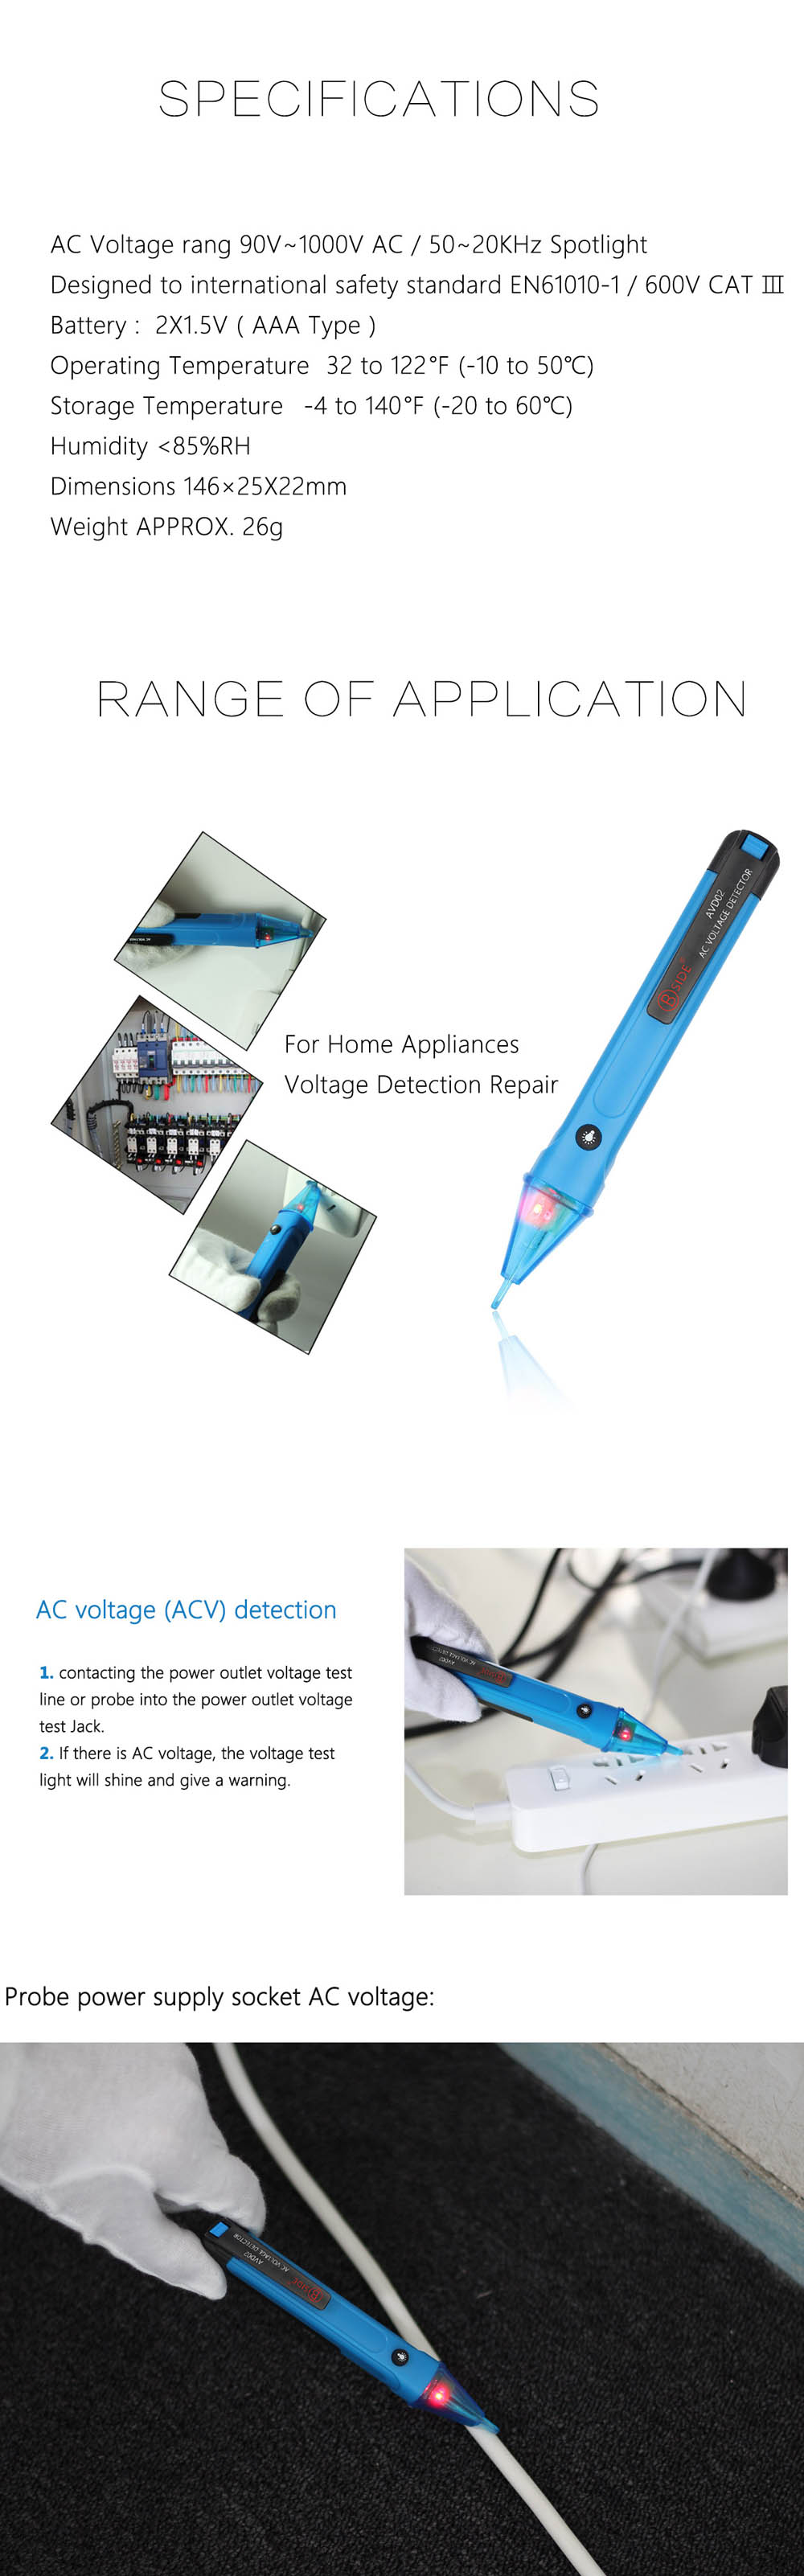 BSIDE AVD02 Non-contact Voltage Detector with LED Light for Workplace / Home / Shop